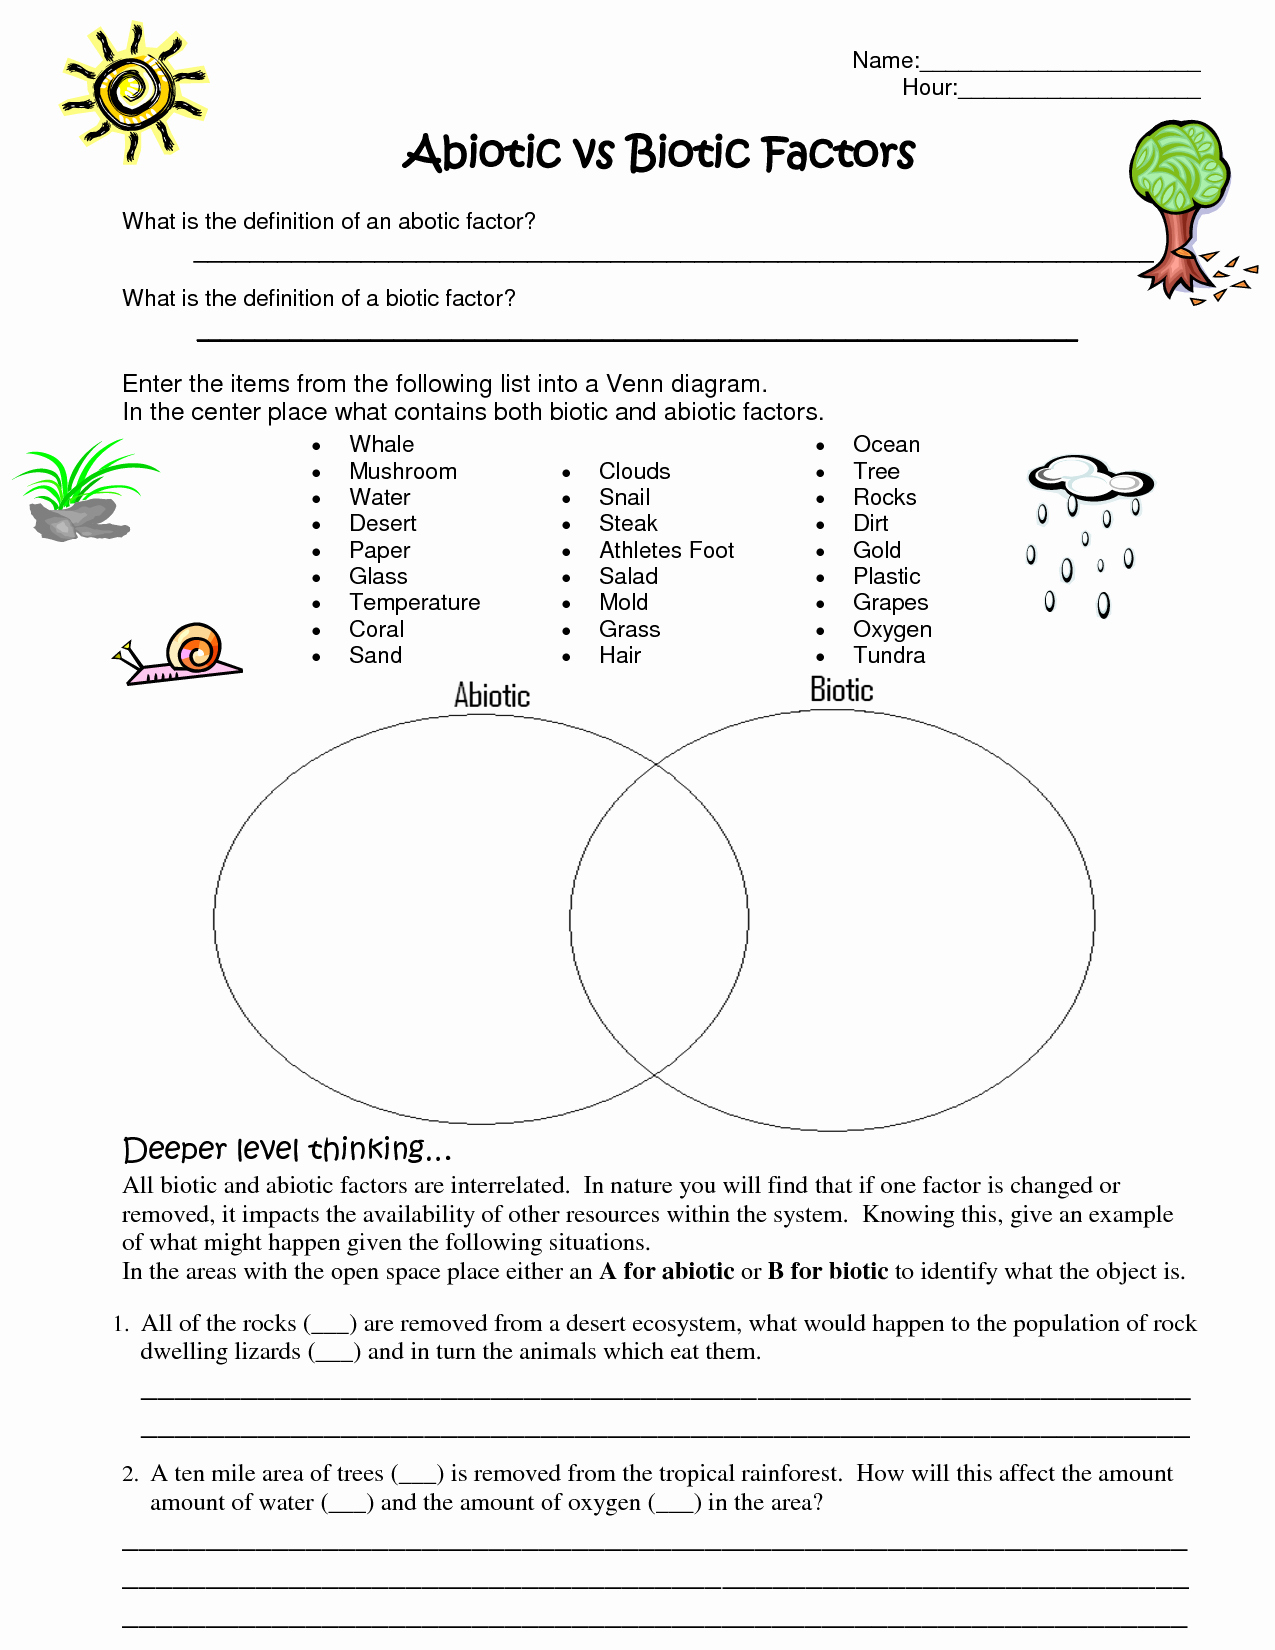 Abiotic and Biotic Factors Worksheet Fresh Biotic Vs Abiotic Lessons Tes